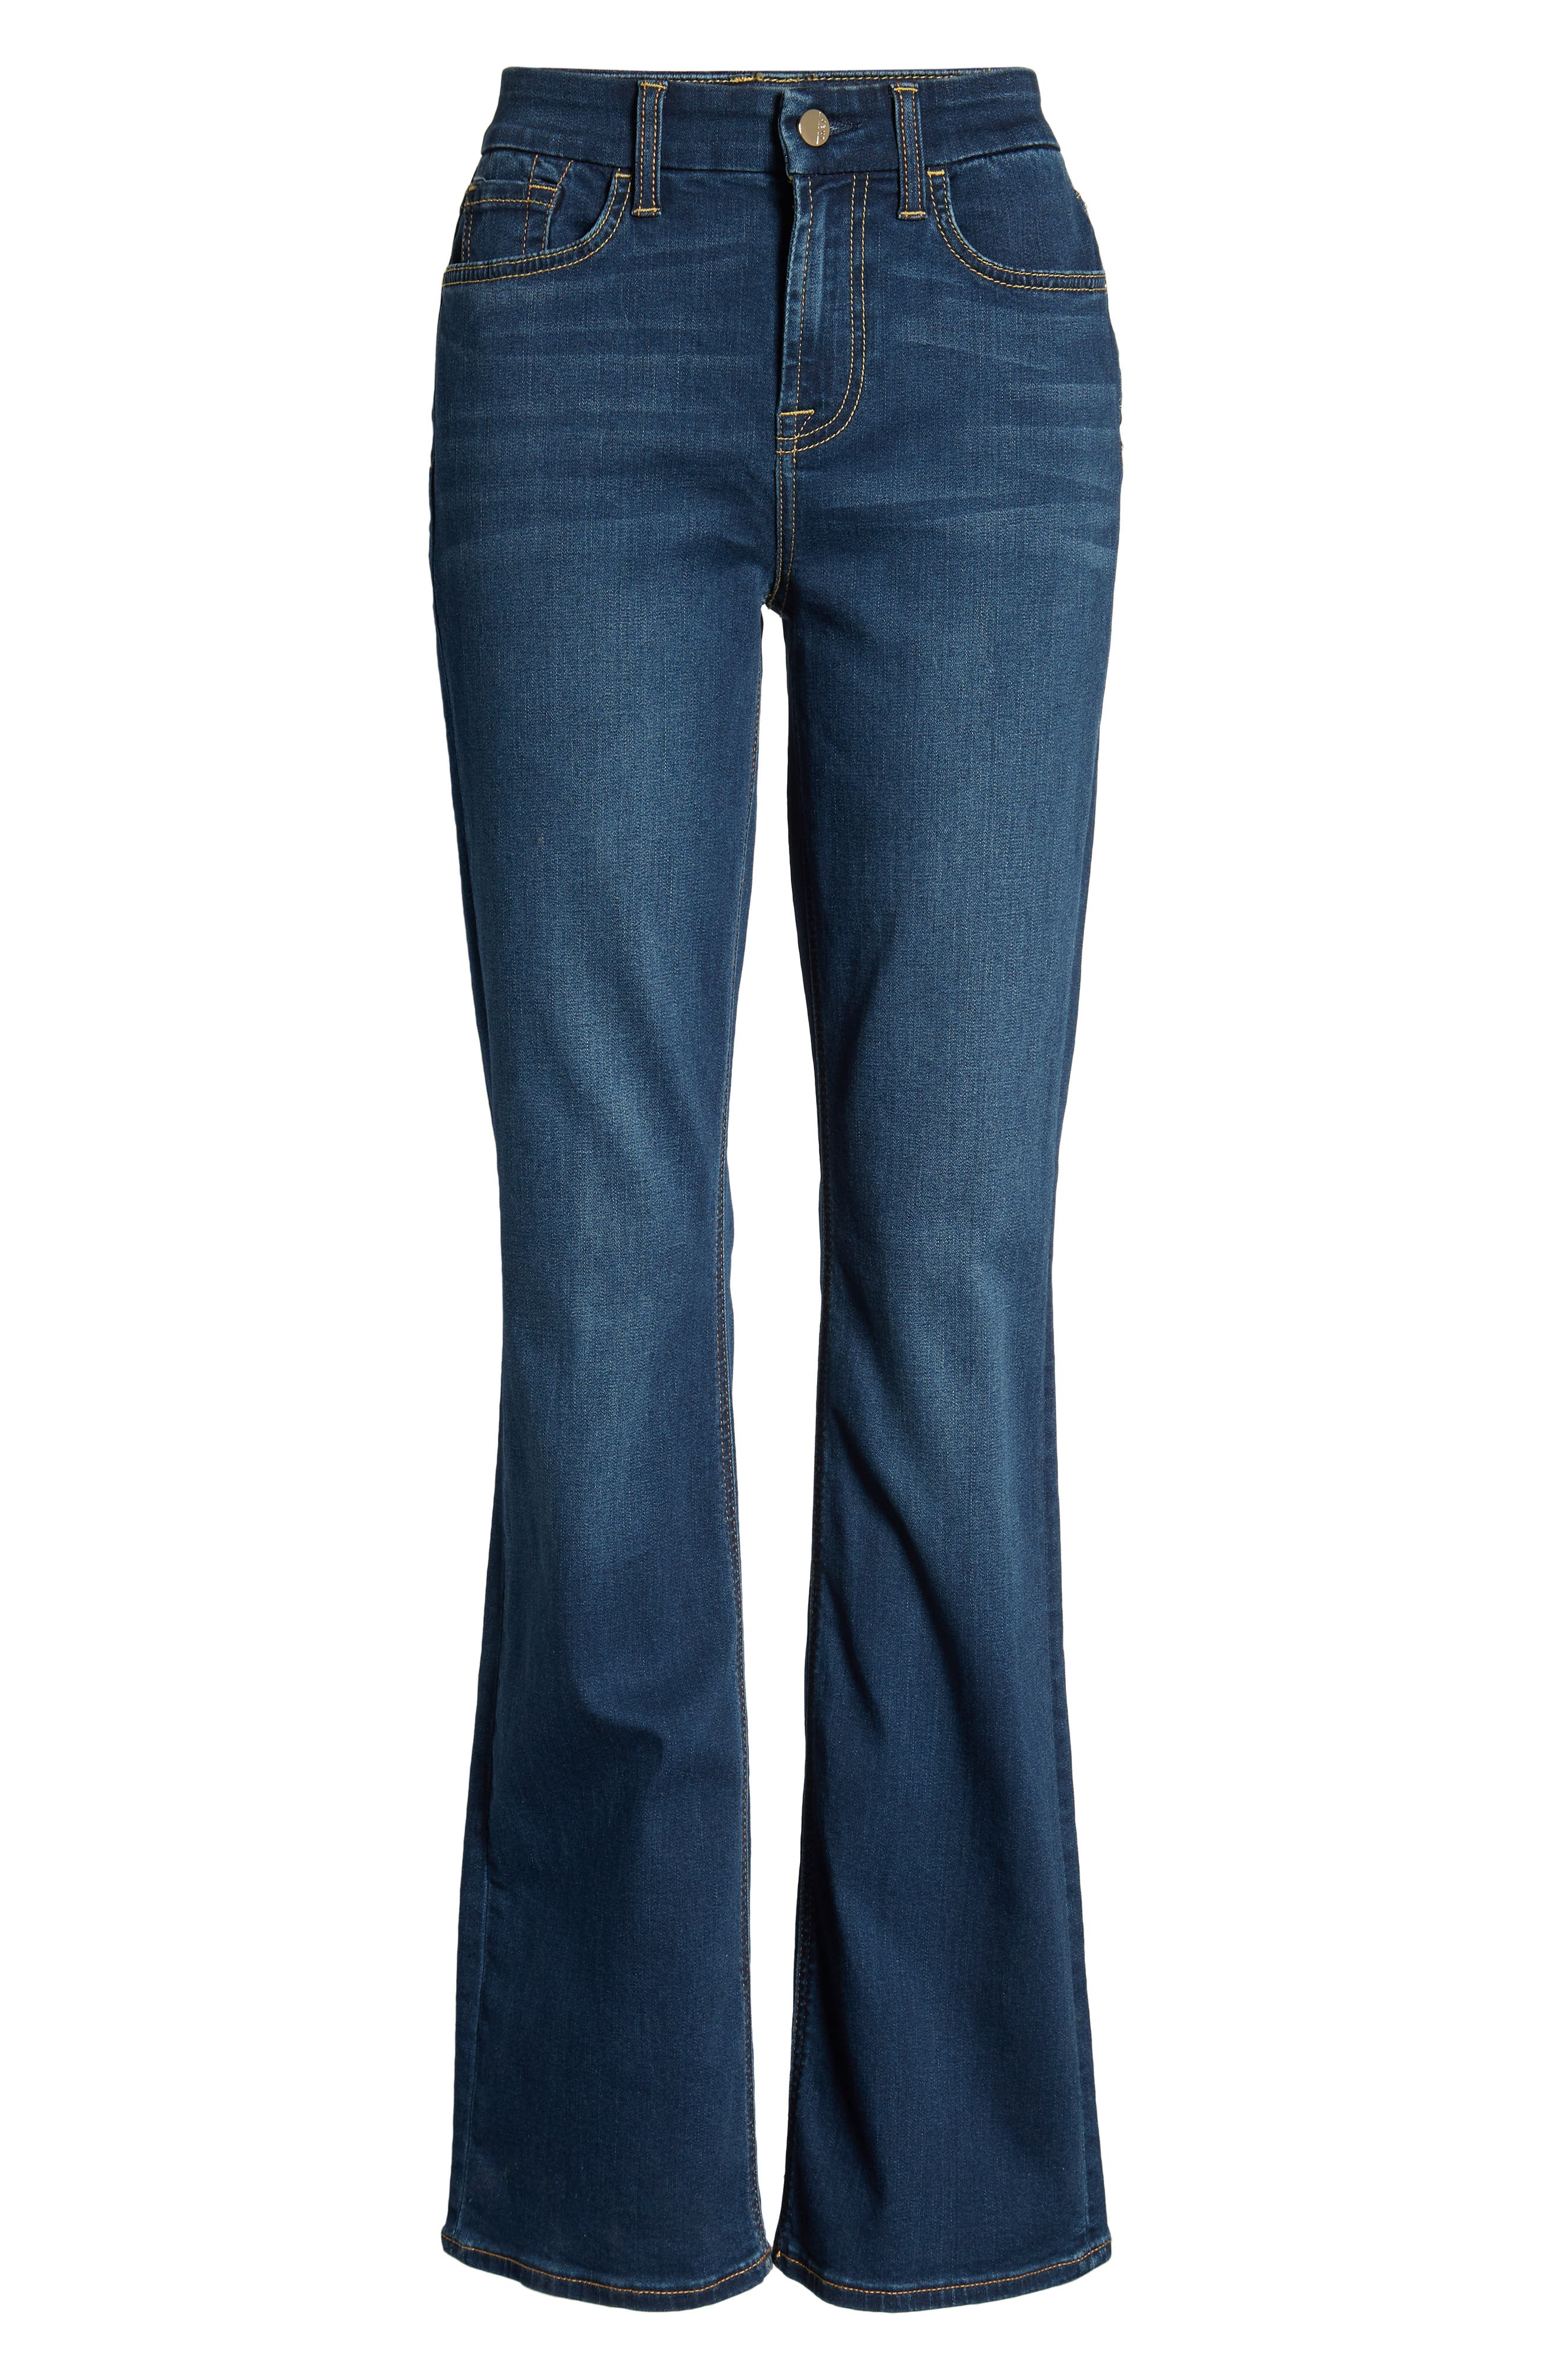 JEN7 BY 7 FOR ALL MANKIND, Slim Bootcut Jeans, Alternate thumbnail 7, color, CLASSIC MEDIUM BLUE